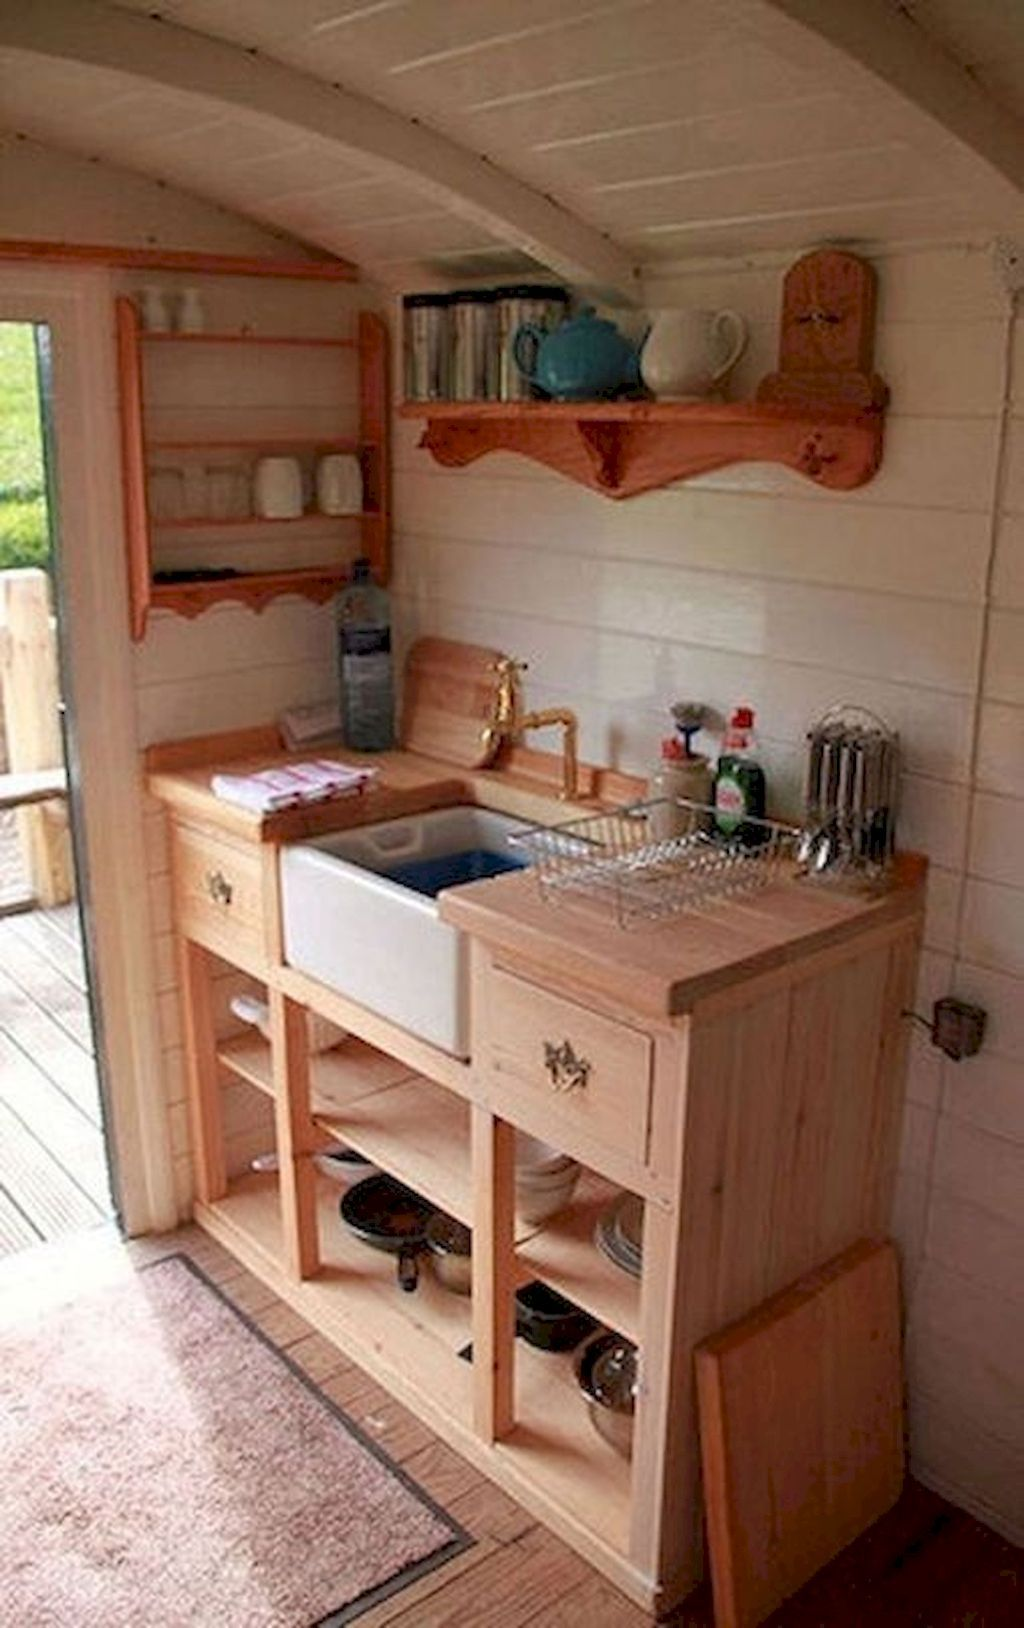 70 tiny house kitchen storage organization and tips ideas in 2020 tiny house kitchen kitchen on kitchen organization for small spaces id=77929